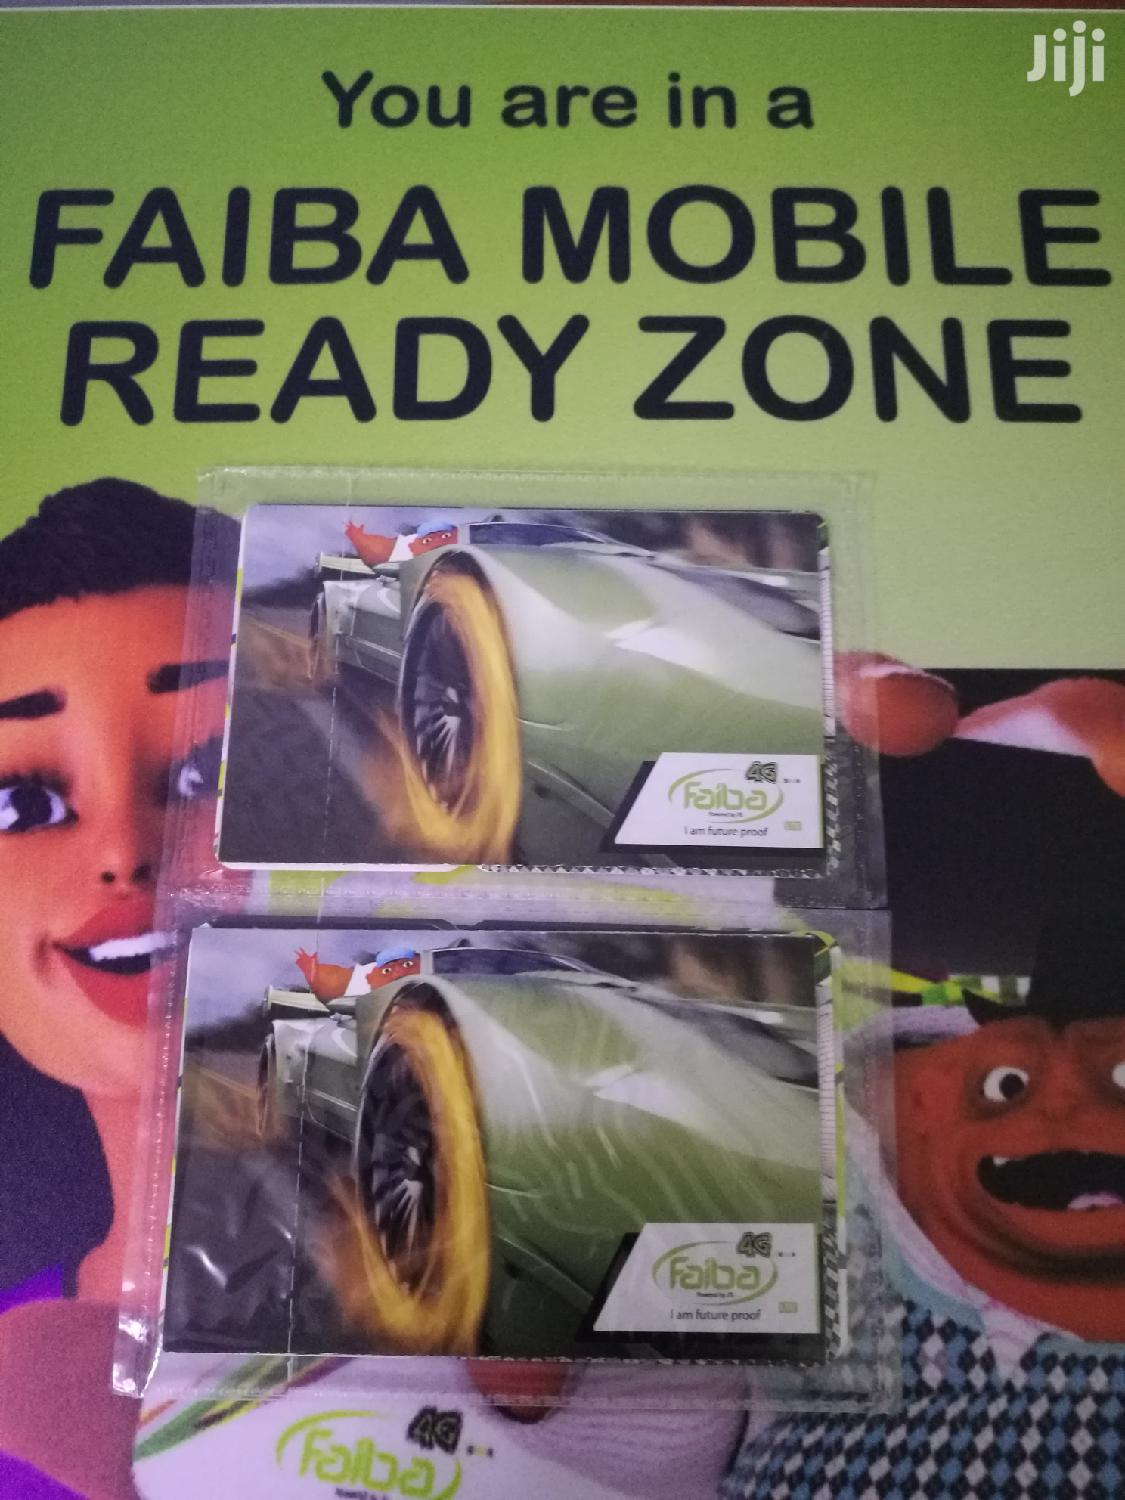 Faiba Jtl Simcards | Accessories for Mobile Phones & Tablets for sale in Nairobi Central, Nairobi, Kenya